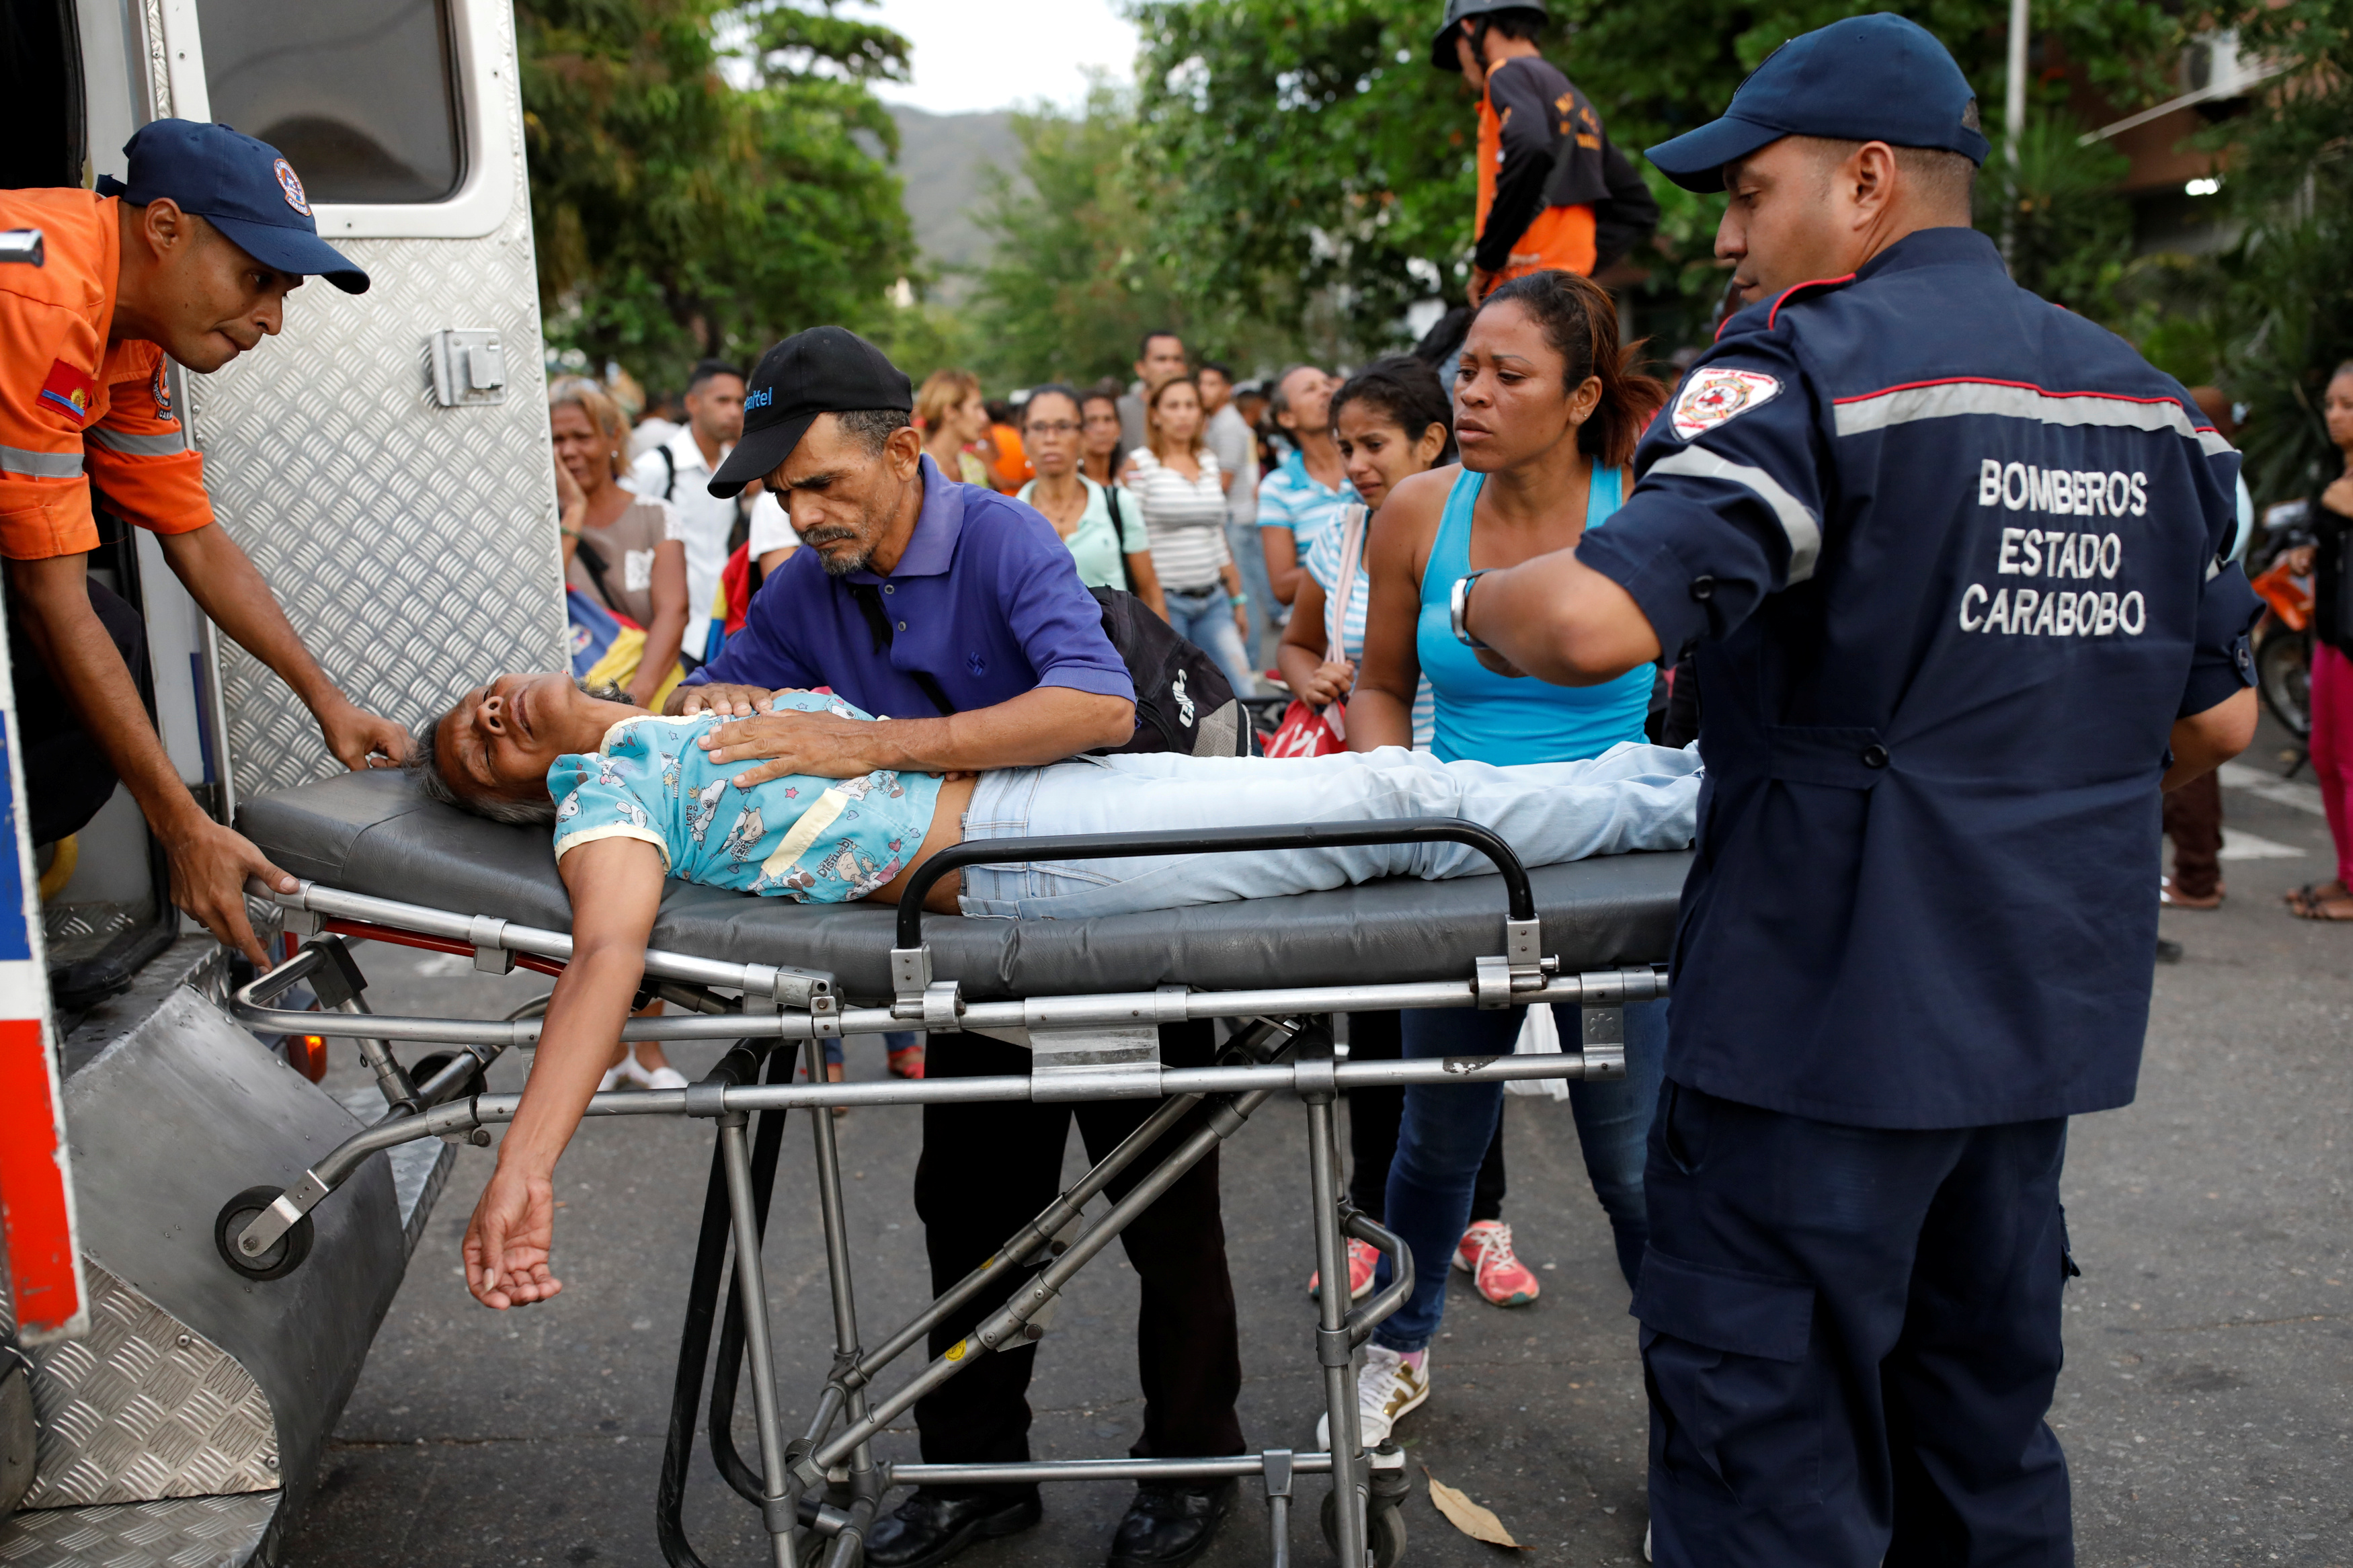 Paramedics help a woman who fainted outside the lockup where a fire occurred in Valencia, Venezuela on March 28, 2018.